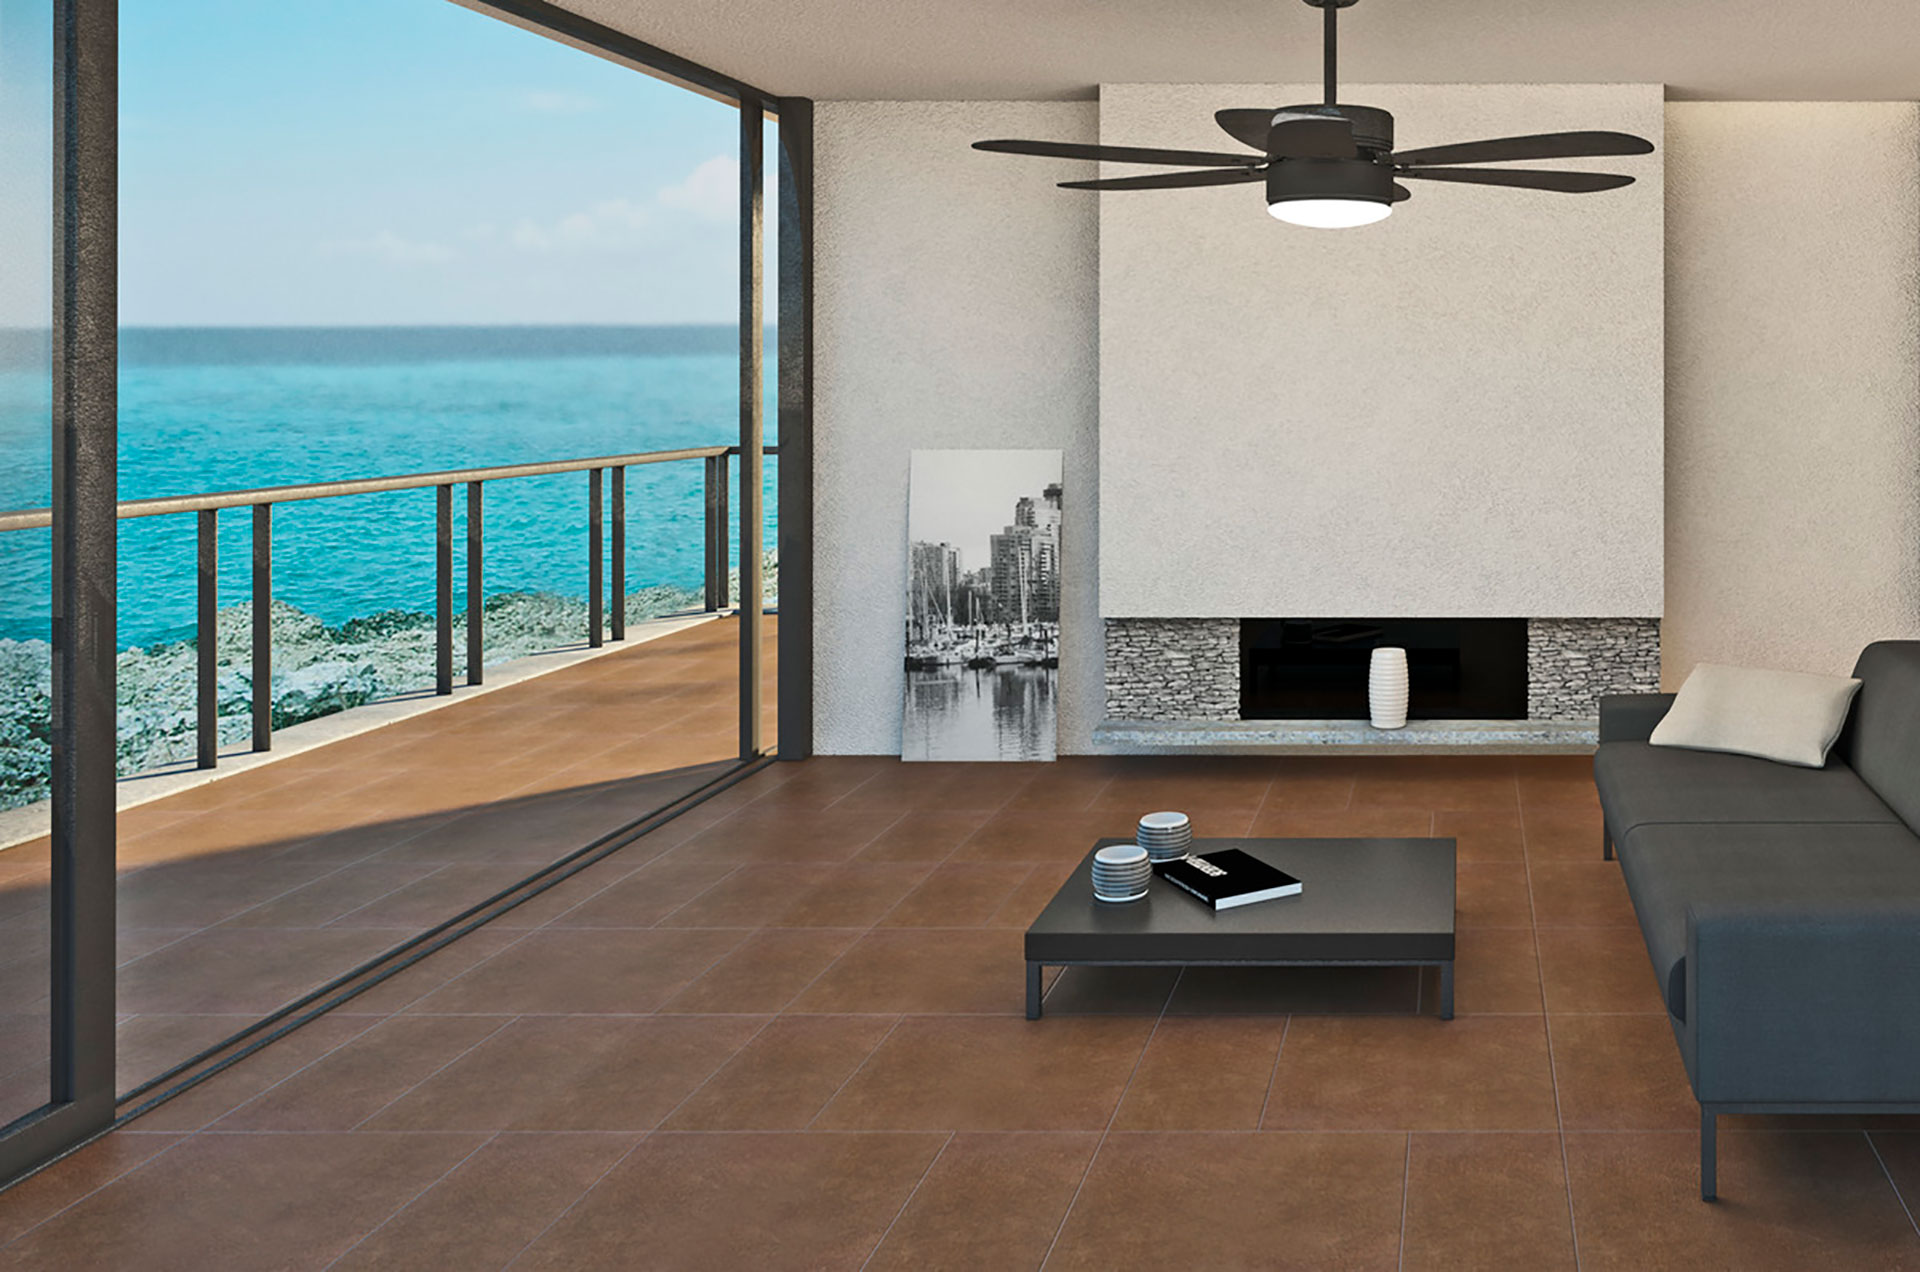 Ariostea porcelain: from nature to high-tech